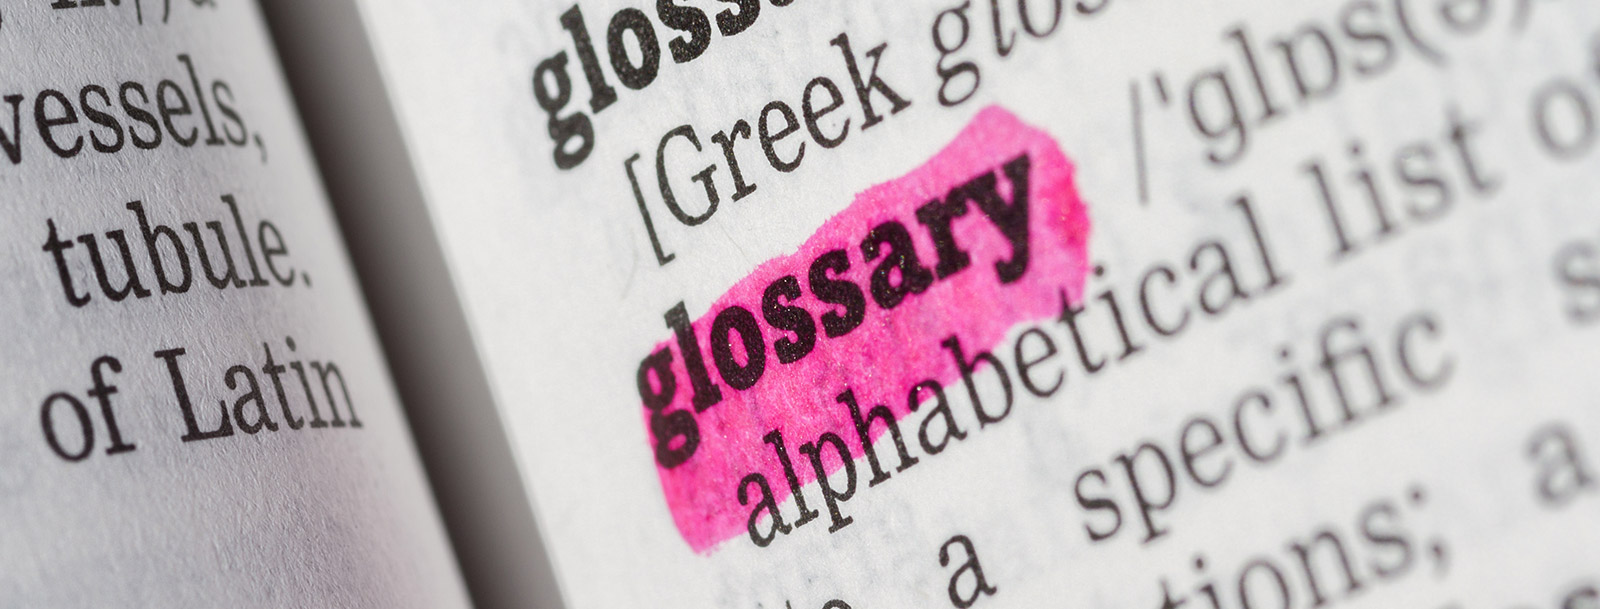 A glossary to help you understand the terminology at the senior living in Parsons